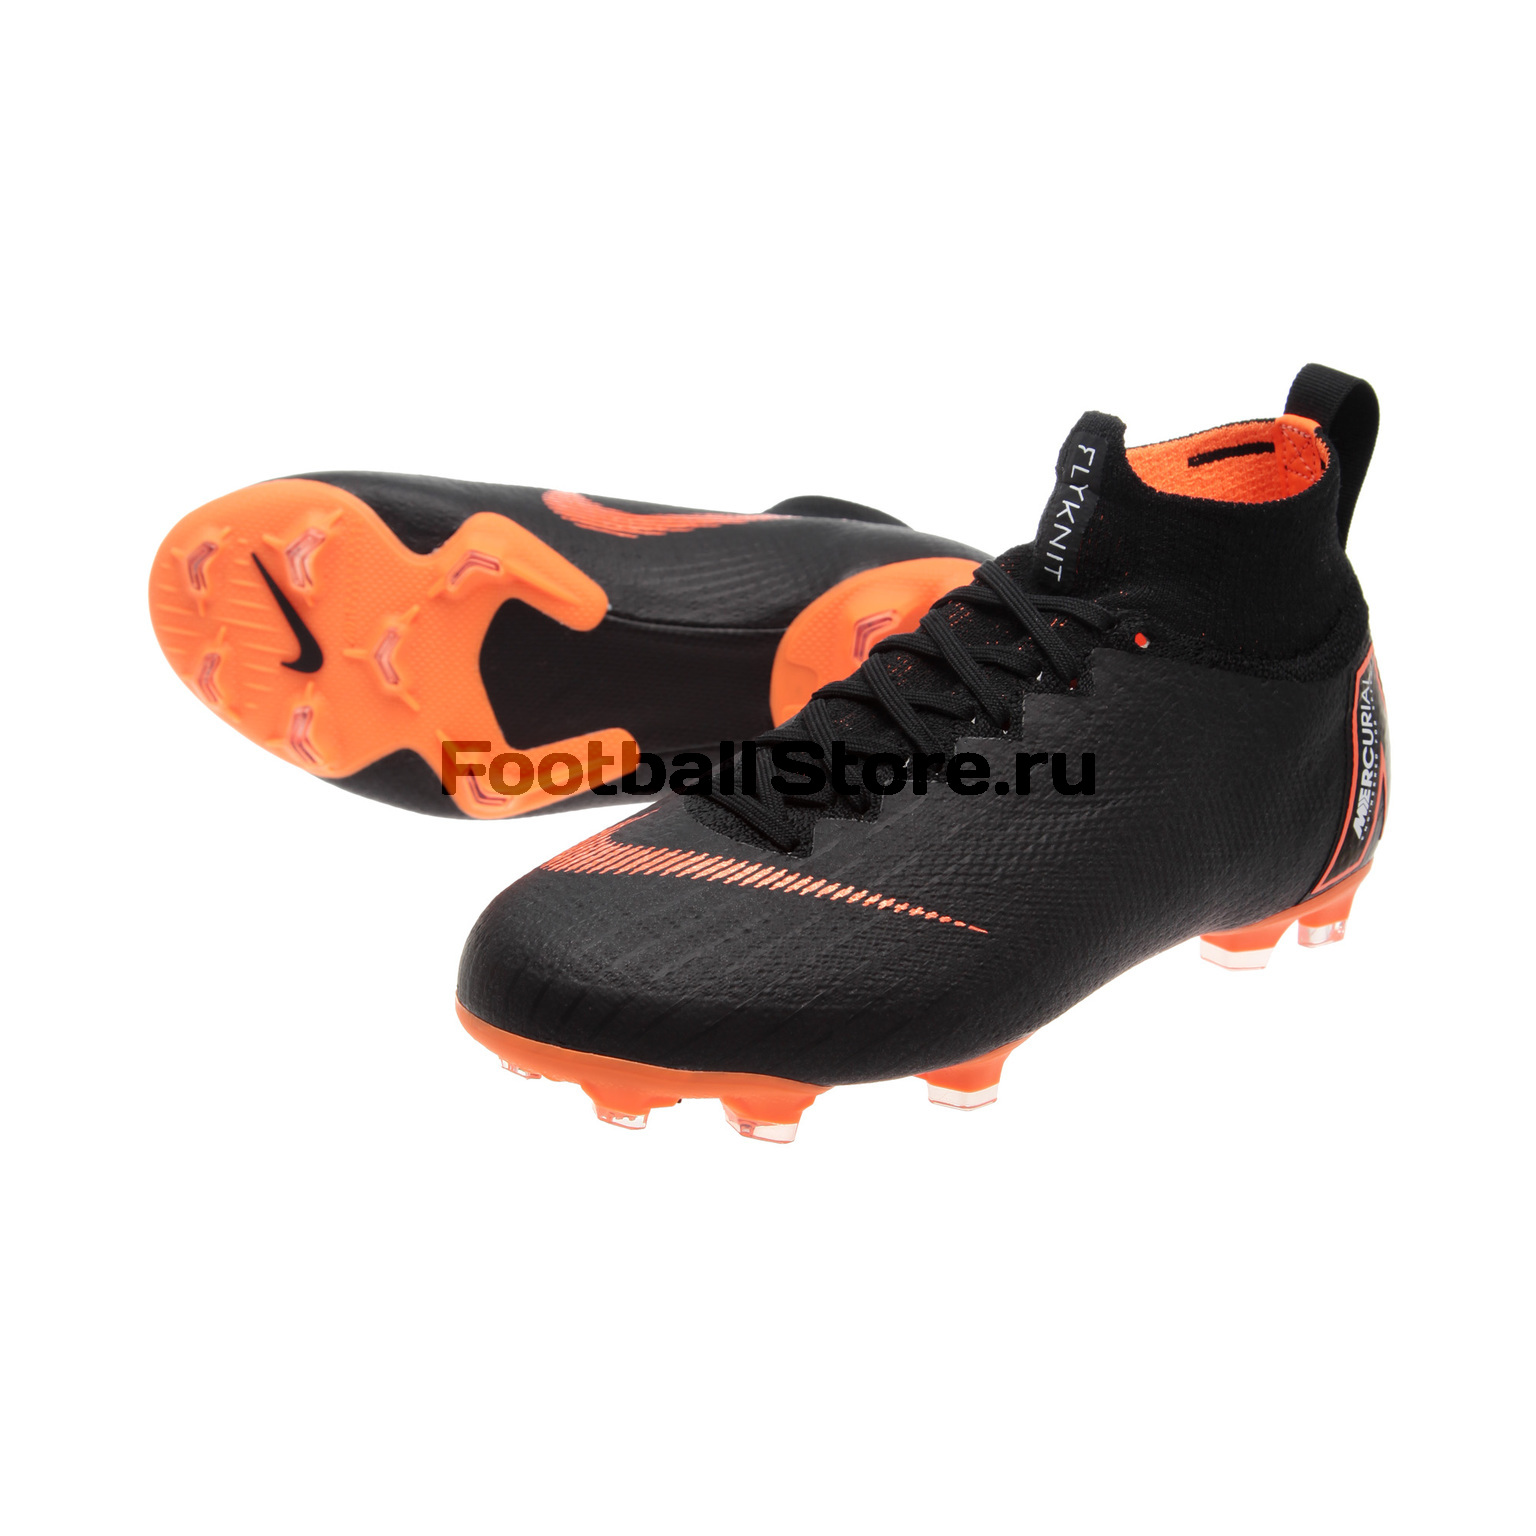 Бутсы Nike JR Superfly 6 Elite FG AH7340-081 бутсы nike hypervenom phantom iii club fg jrah7290 081